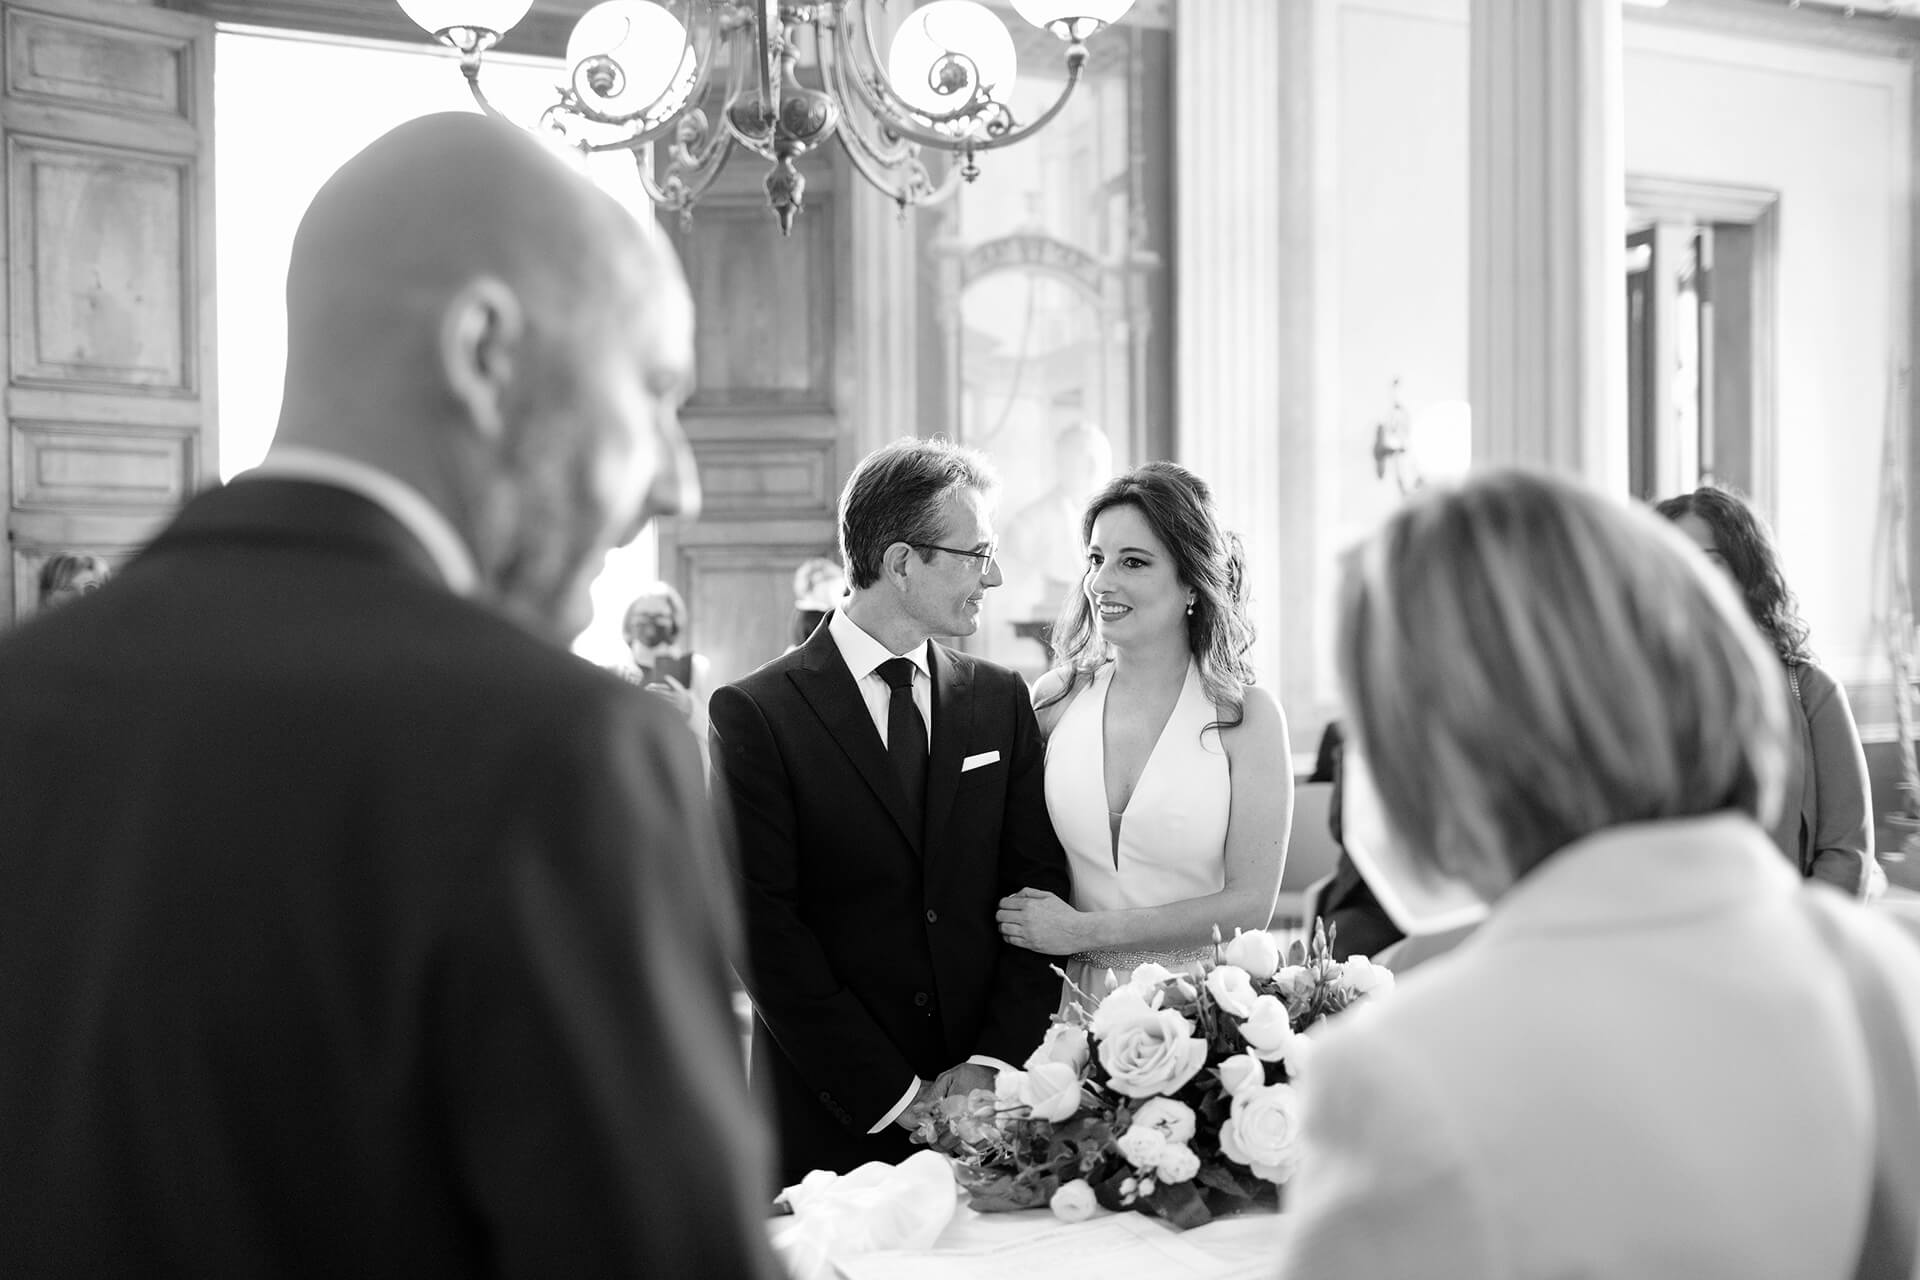 Italy, Sicily, Trapani Wedding Ceremony Image | Black and white photo for the civil wedding at the Town Hall